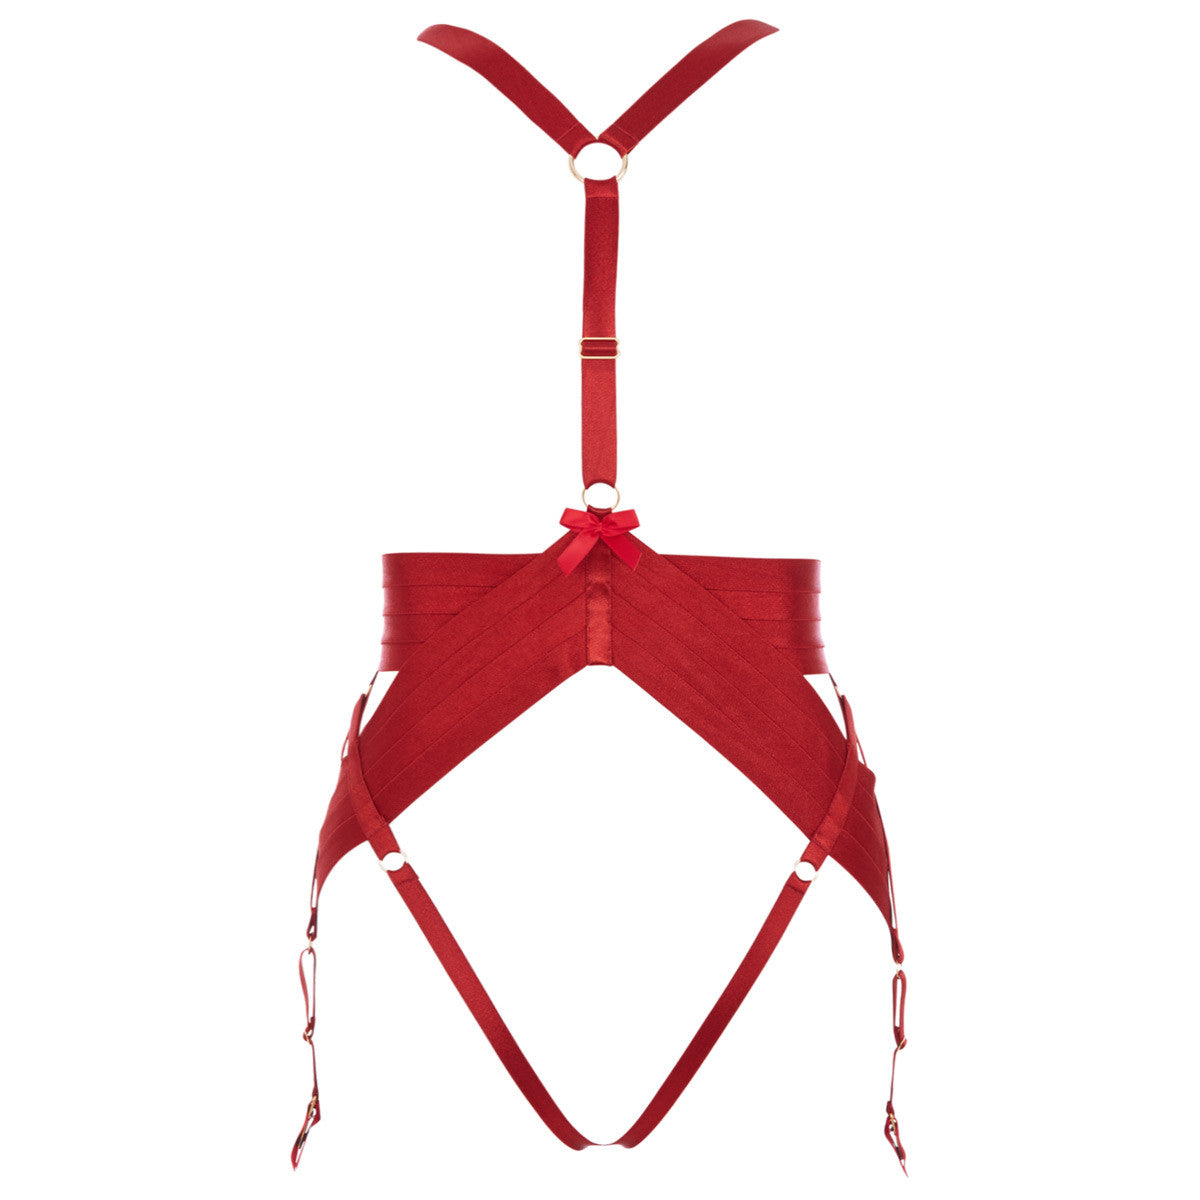 Bordelle Asobi full body harness in burnt red